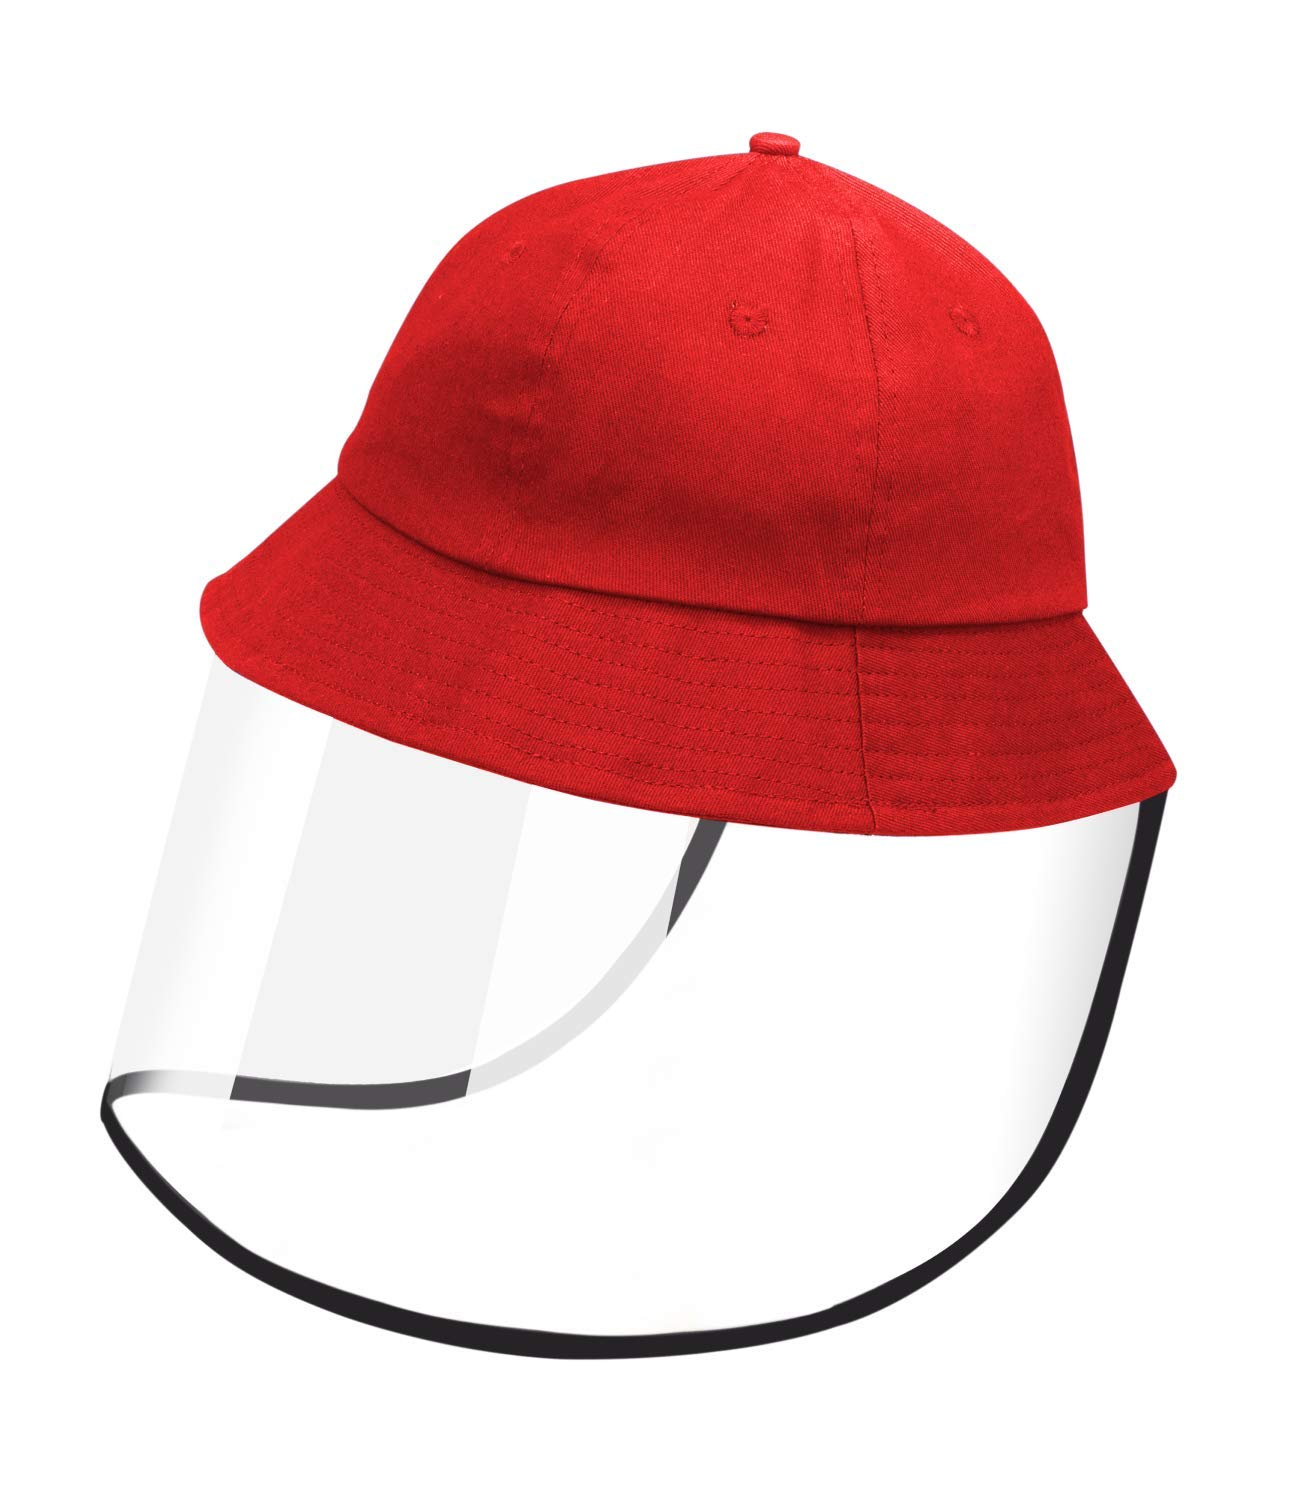 Cotton Packable Sun Hat with Detachable Face Shield 20-22 inch New /& Improved Design with Longer Protective Shield Red /& Blue Suitable for Kids